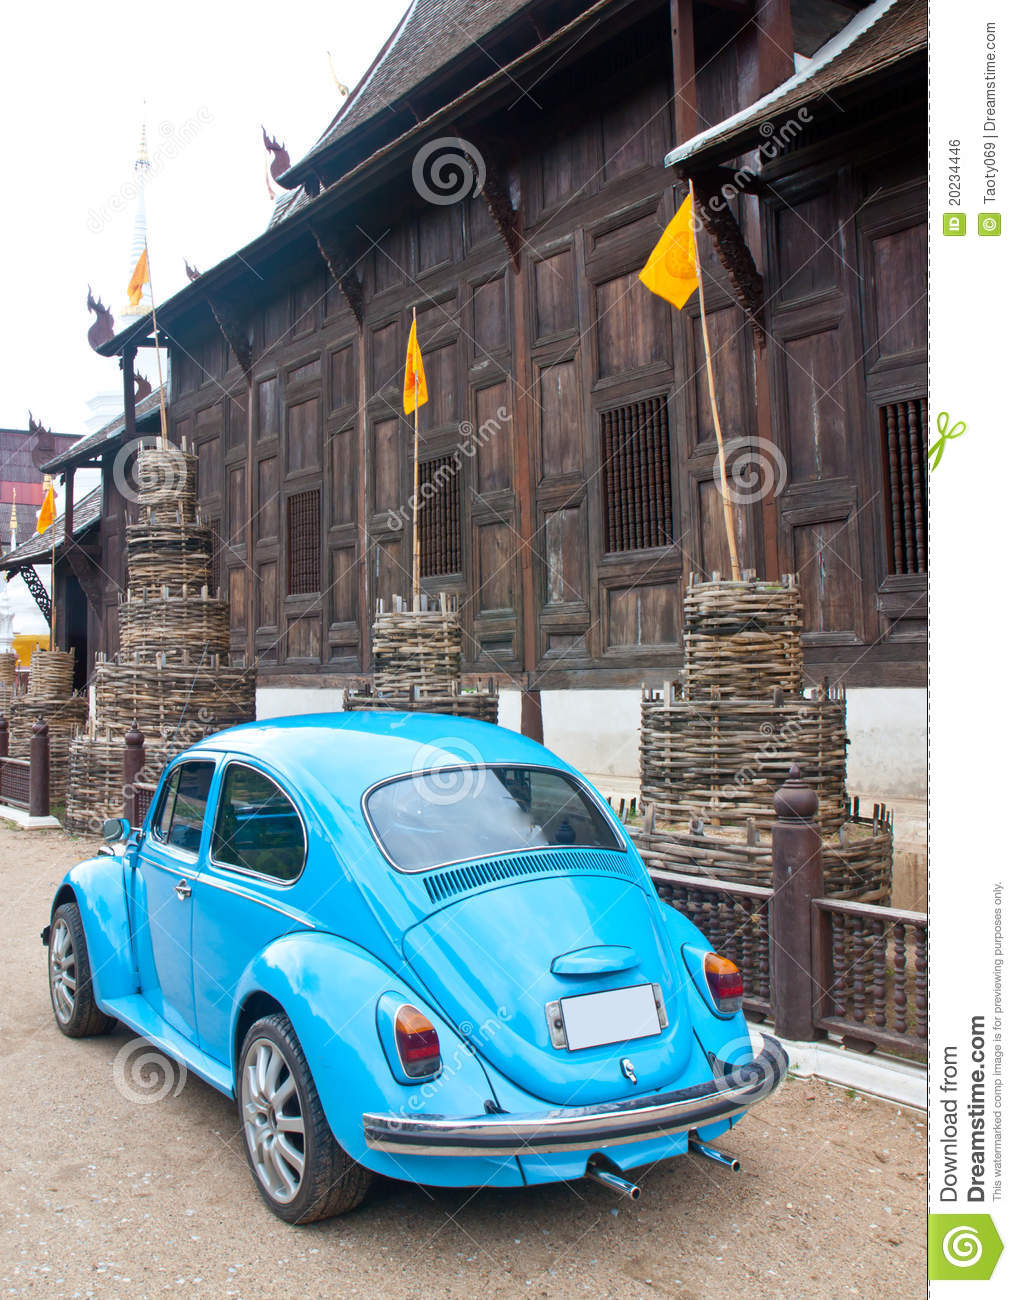 old car and temple royalty free stock image image 20234446. Black Bedroom Furniture Sets. Home Design Ideas